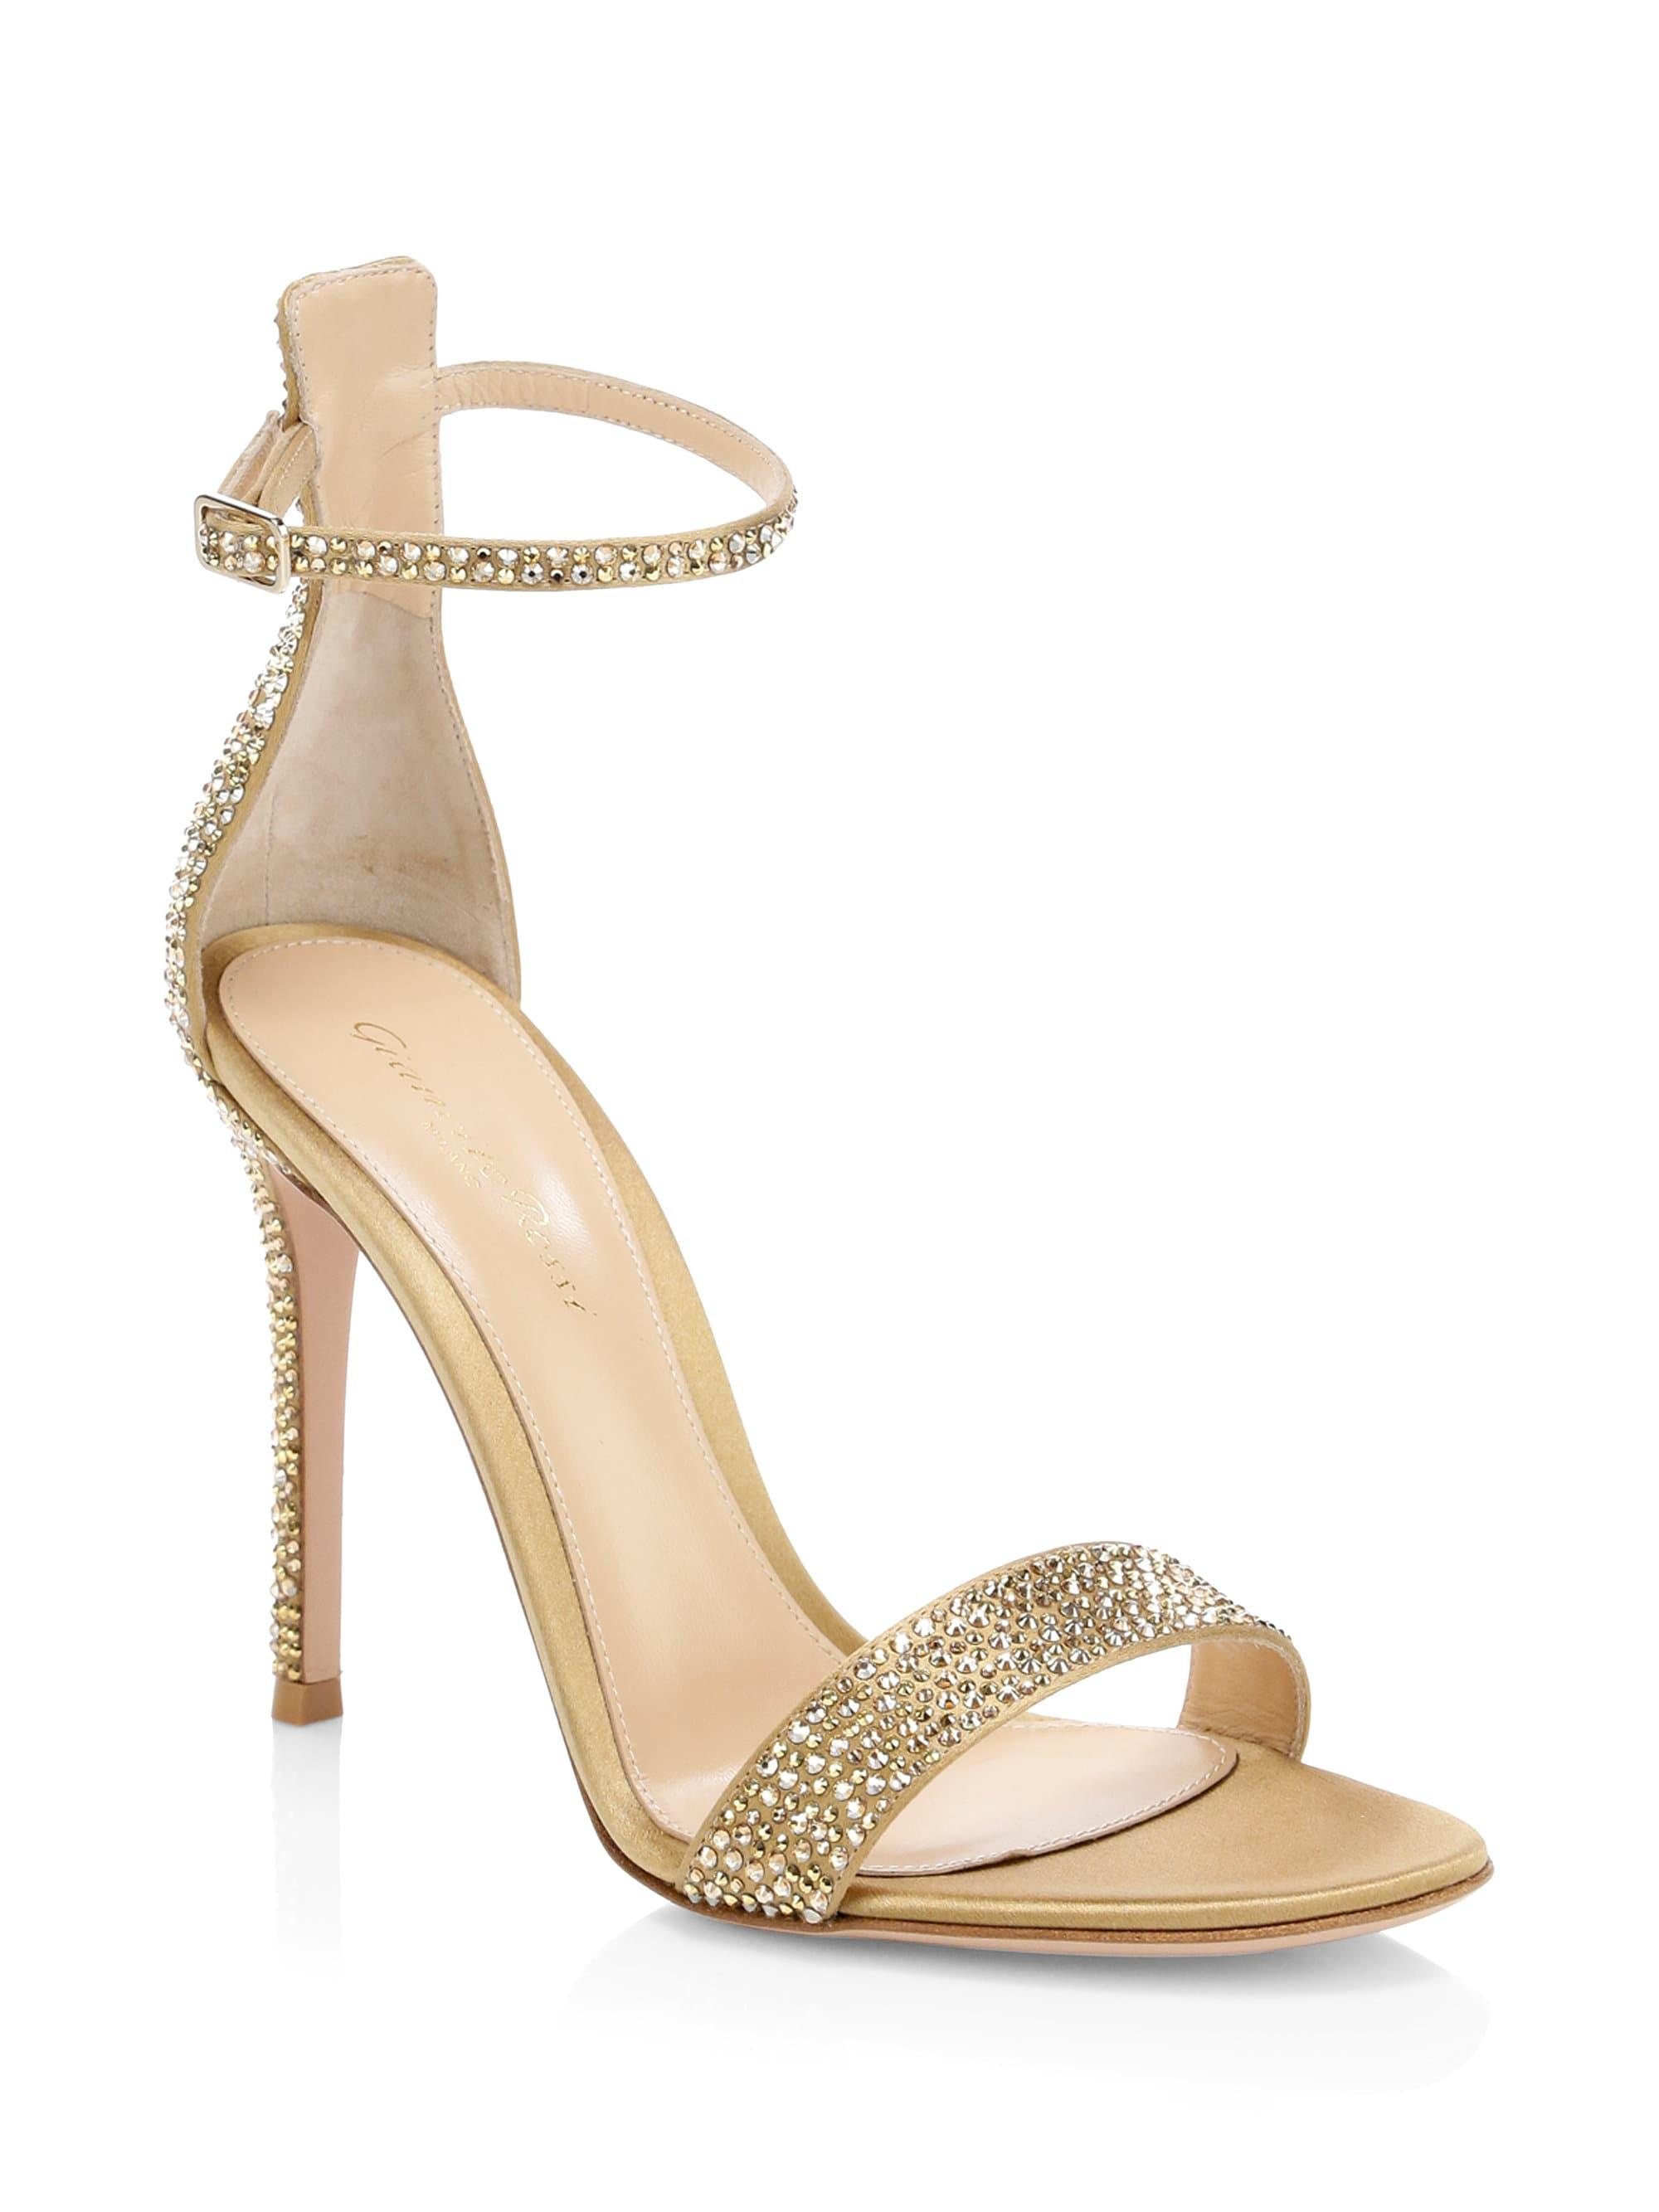 fc3792bef99 Lyst - Gianvito Rossi Silk Crystal Ankle-strap Sandals in Metallic